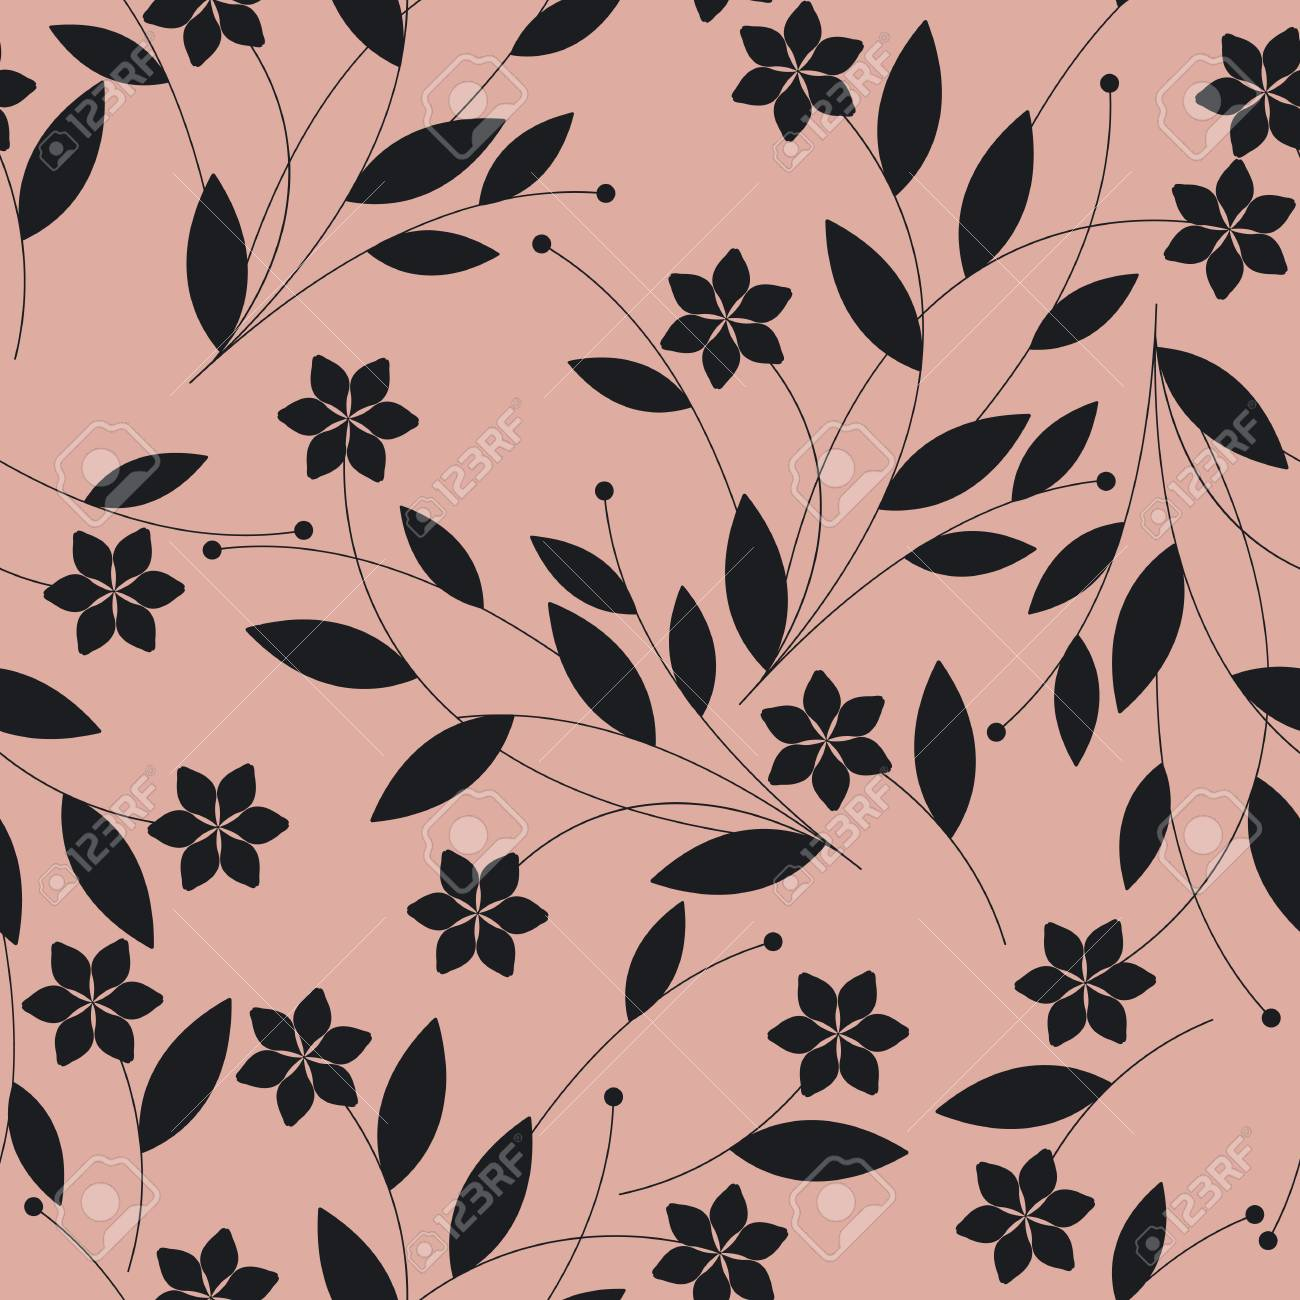 Seamless Pattern With Black Flowers On Pink Background Elegant